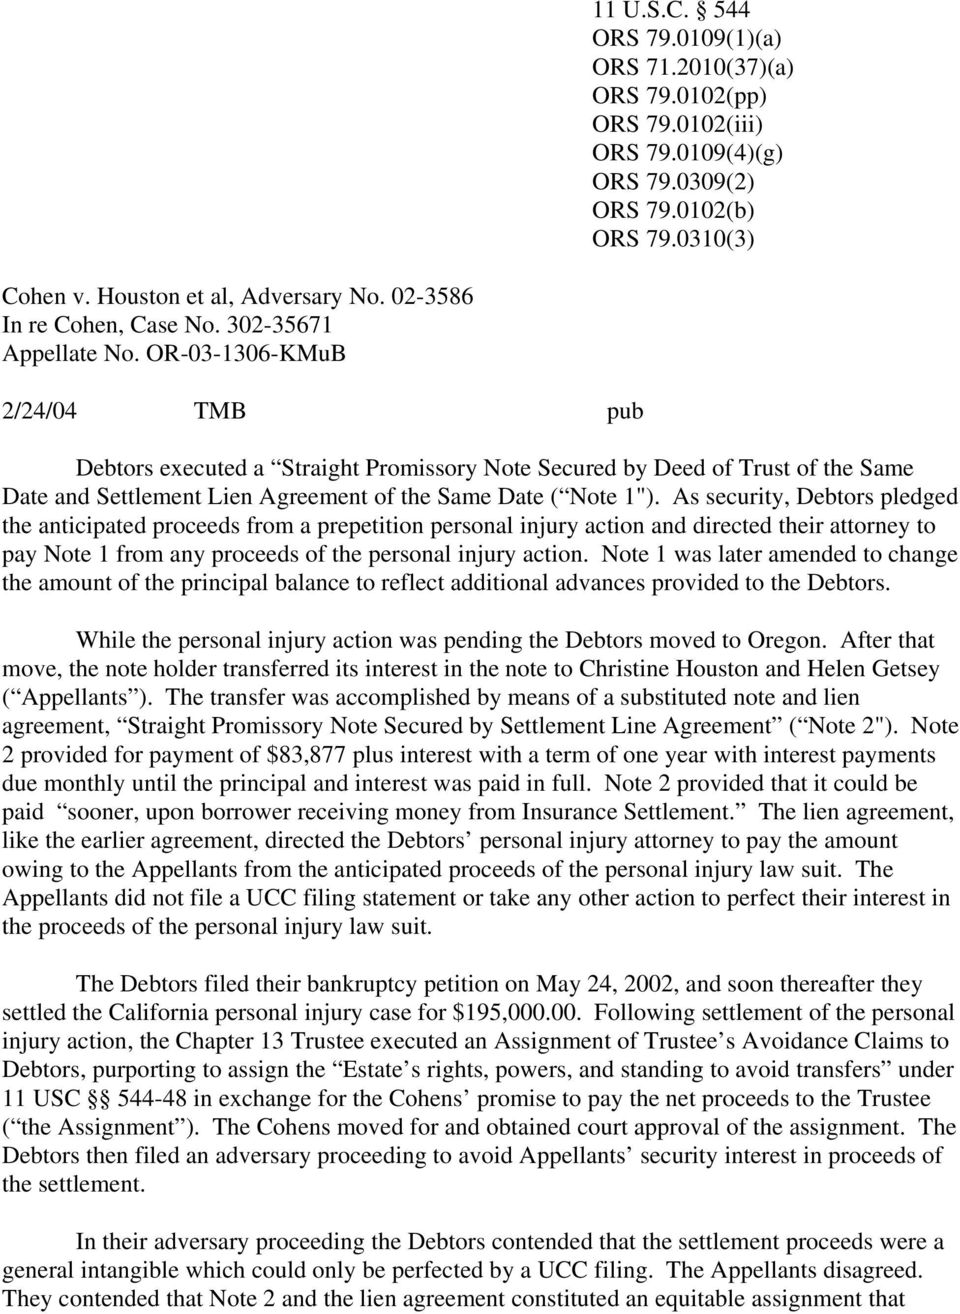 "OR-03-1306-KMuB 2/24/04 TMB pub Debtors executed a Straight Promissory Note Secured by Deed of Trust of the Same Date and Settlement Lien Agreement of the Same Date ( Note 1"")."